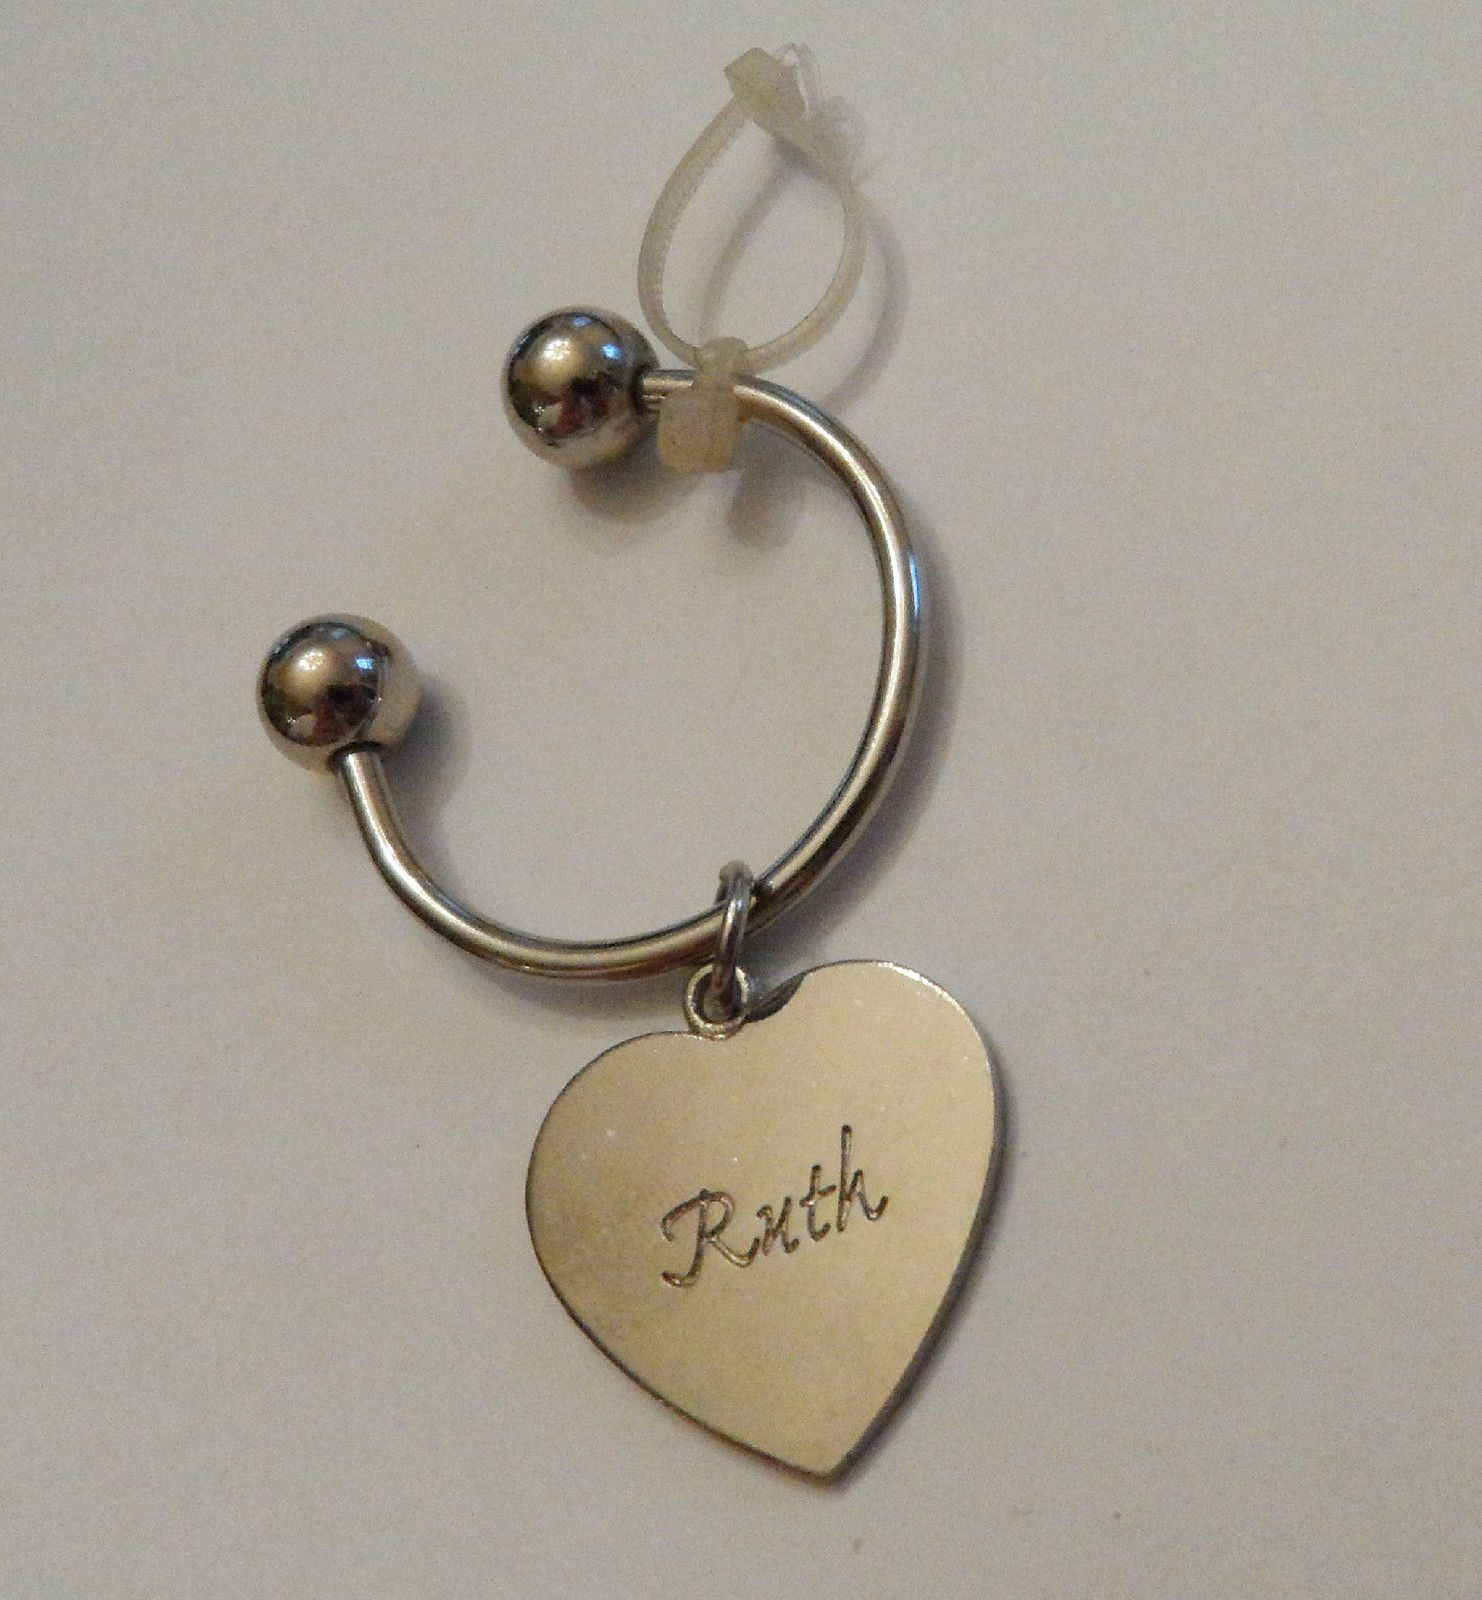 Personalized Engraved Traditional Silvertone Heart Charm Key Ring Name Ruth | eBay